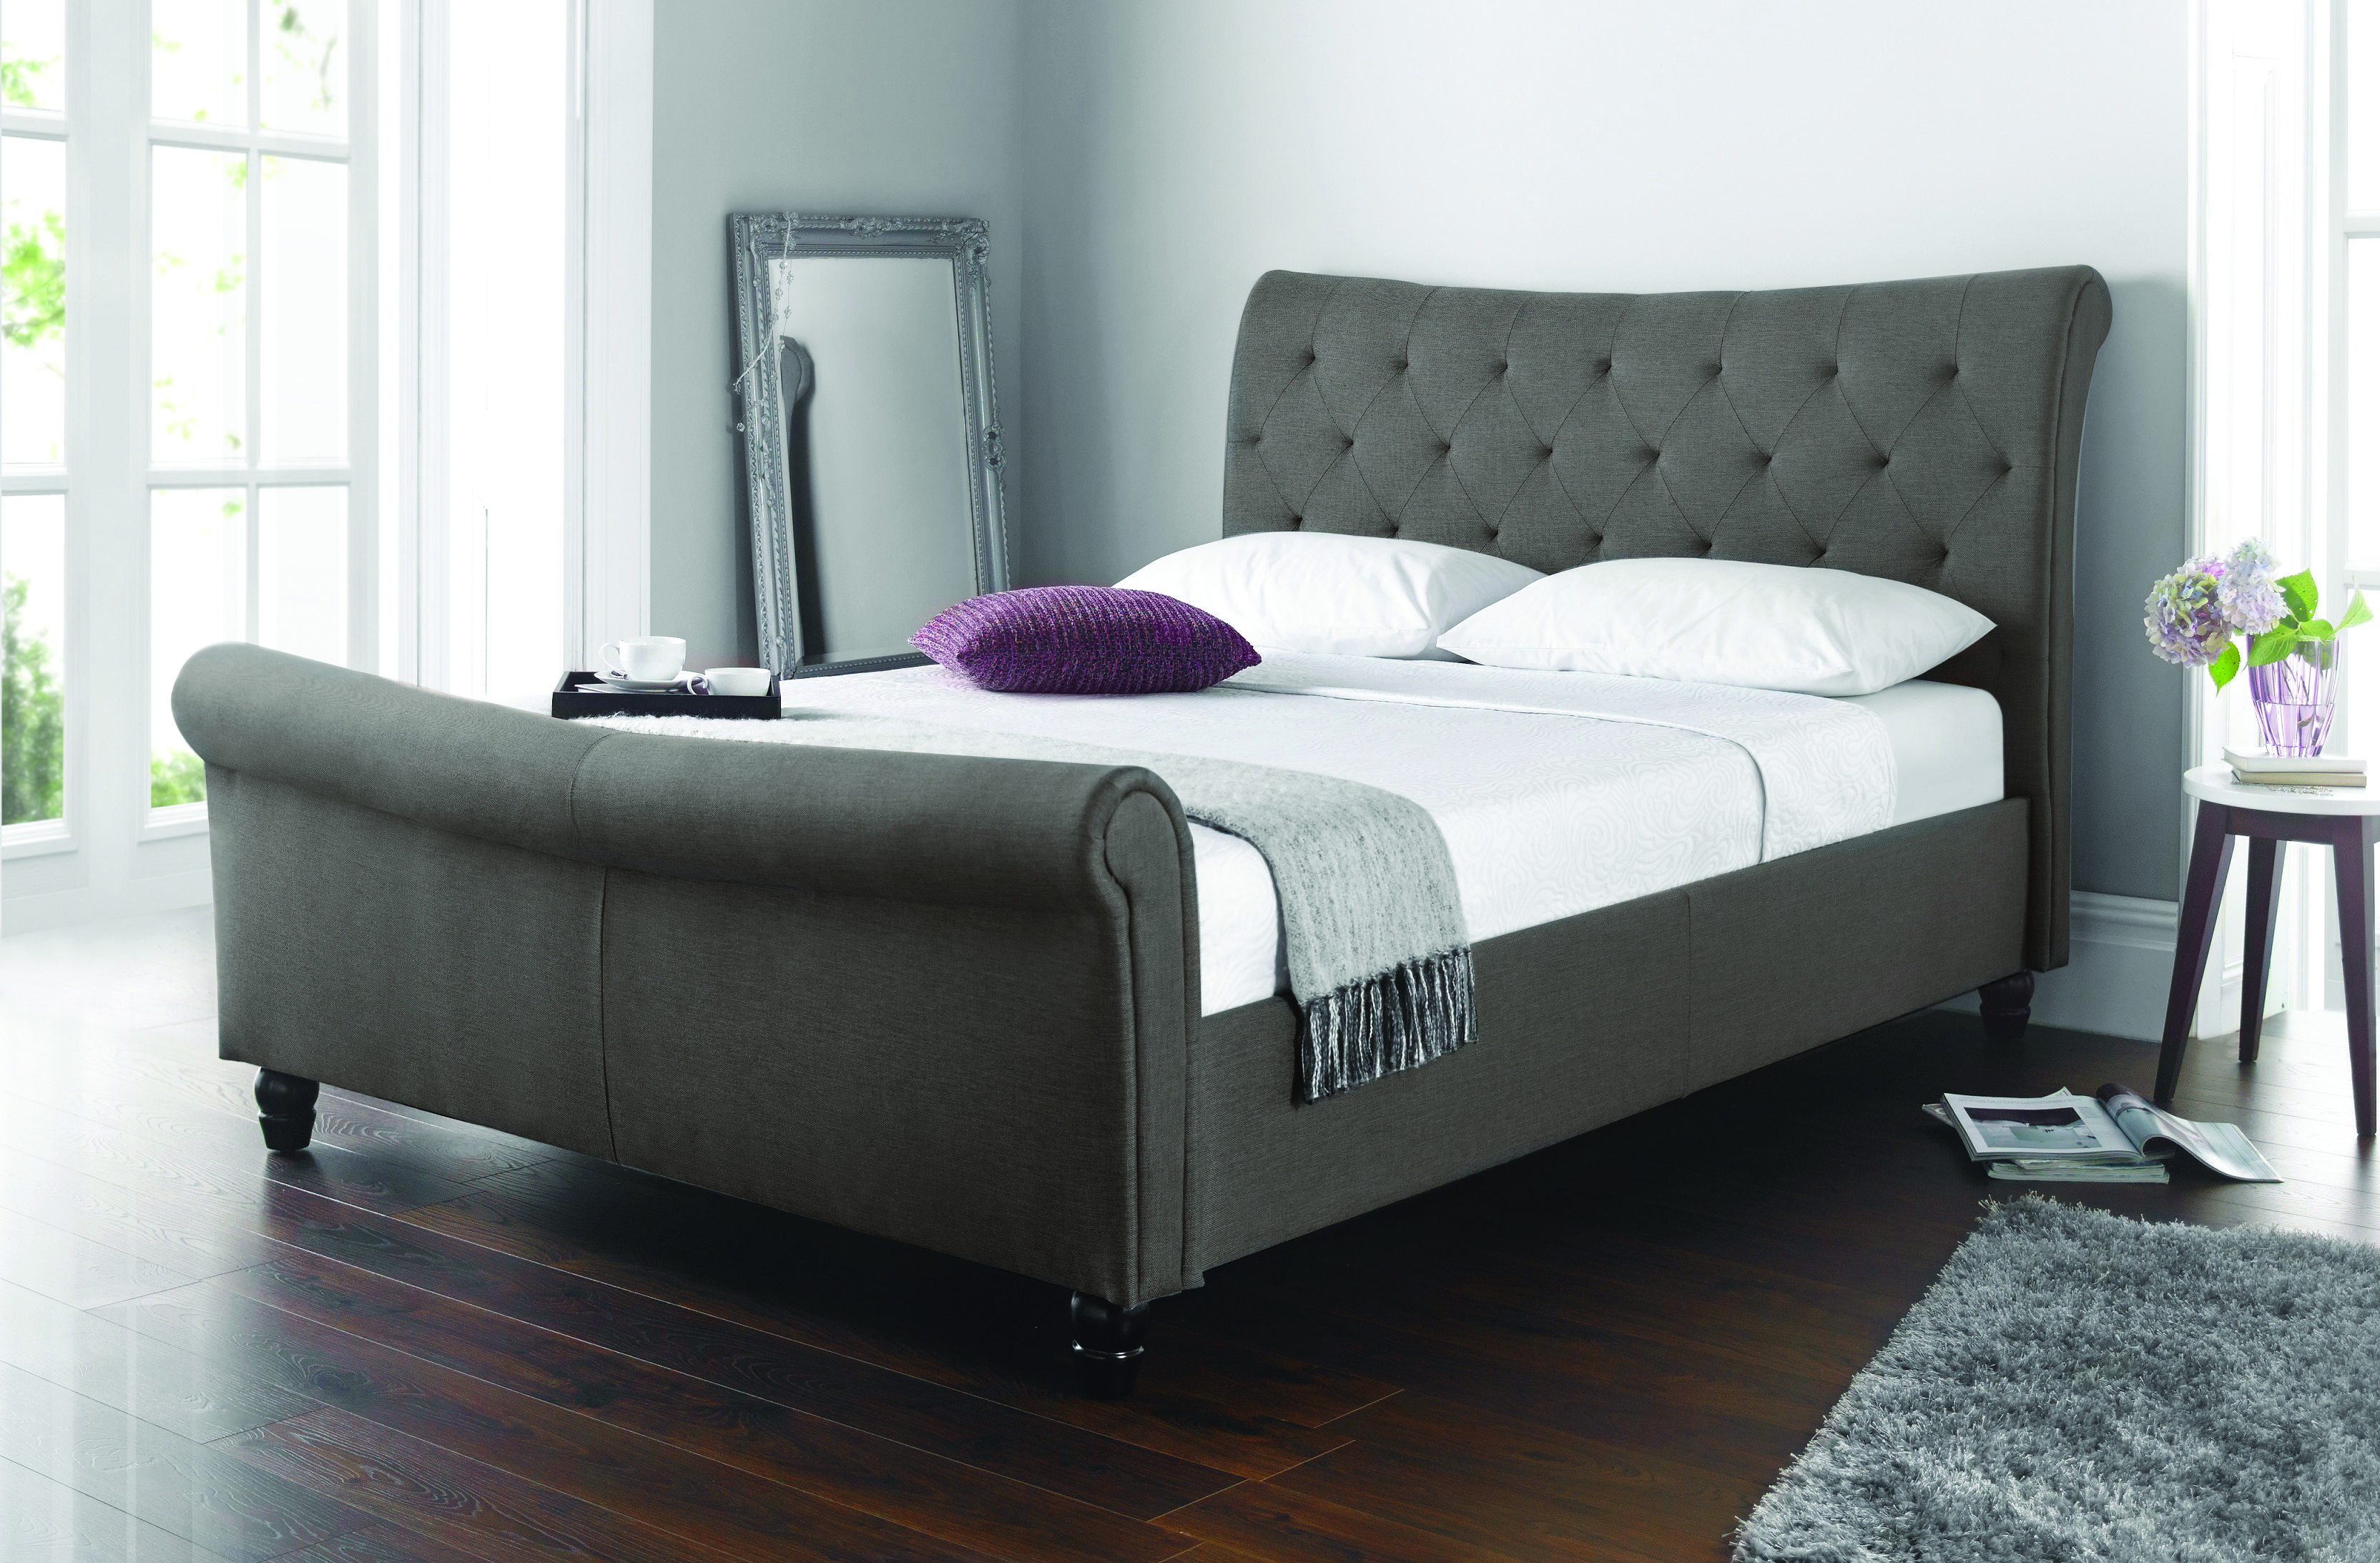 Time4sleep Www Time4sleep Co Uk With Images Upholstered Bed